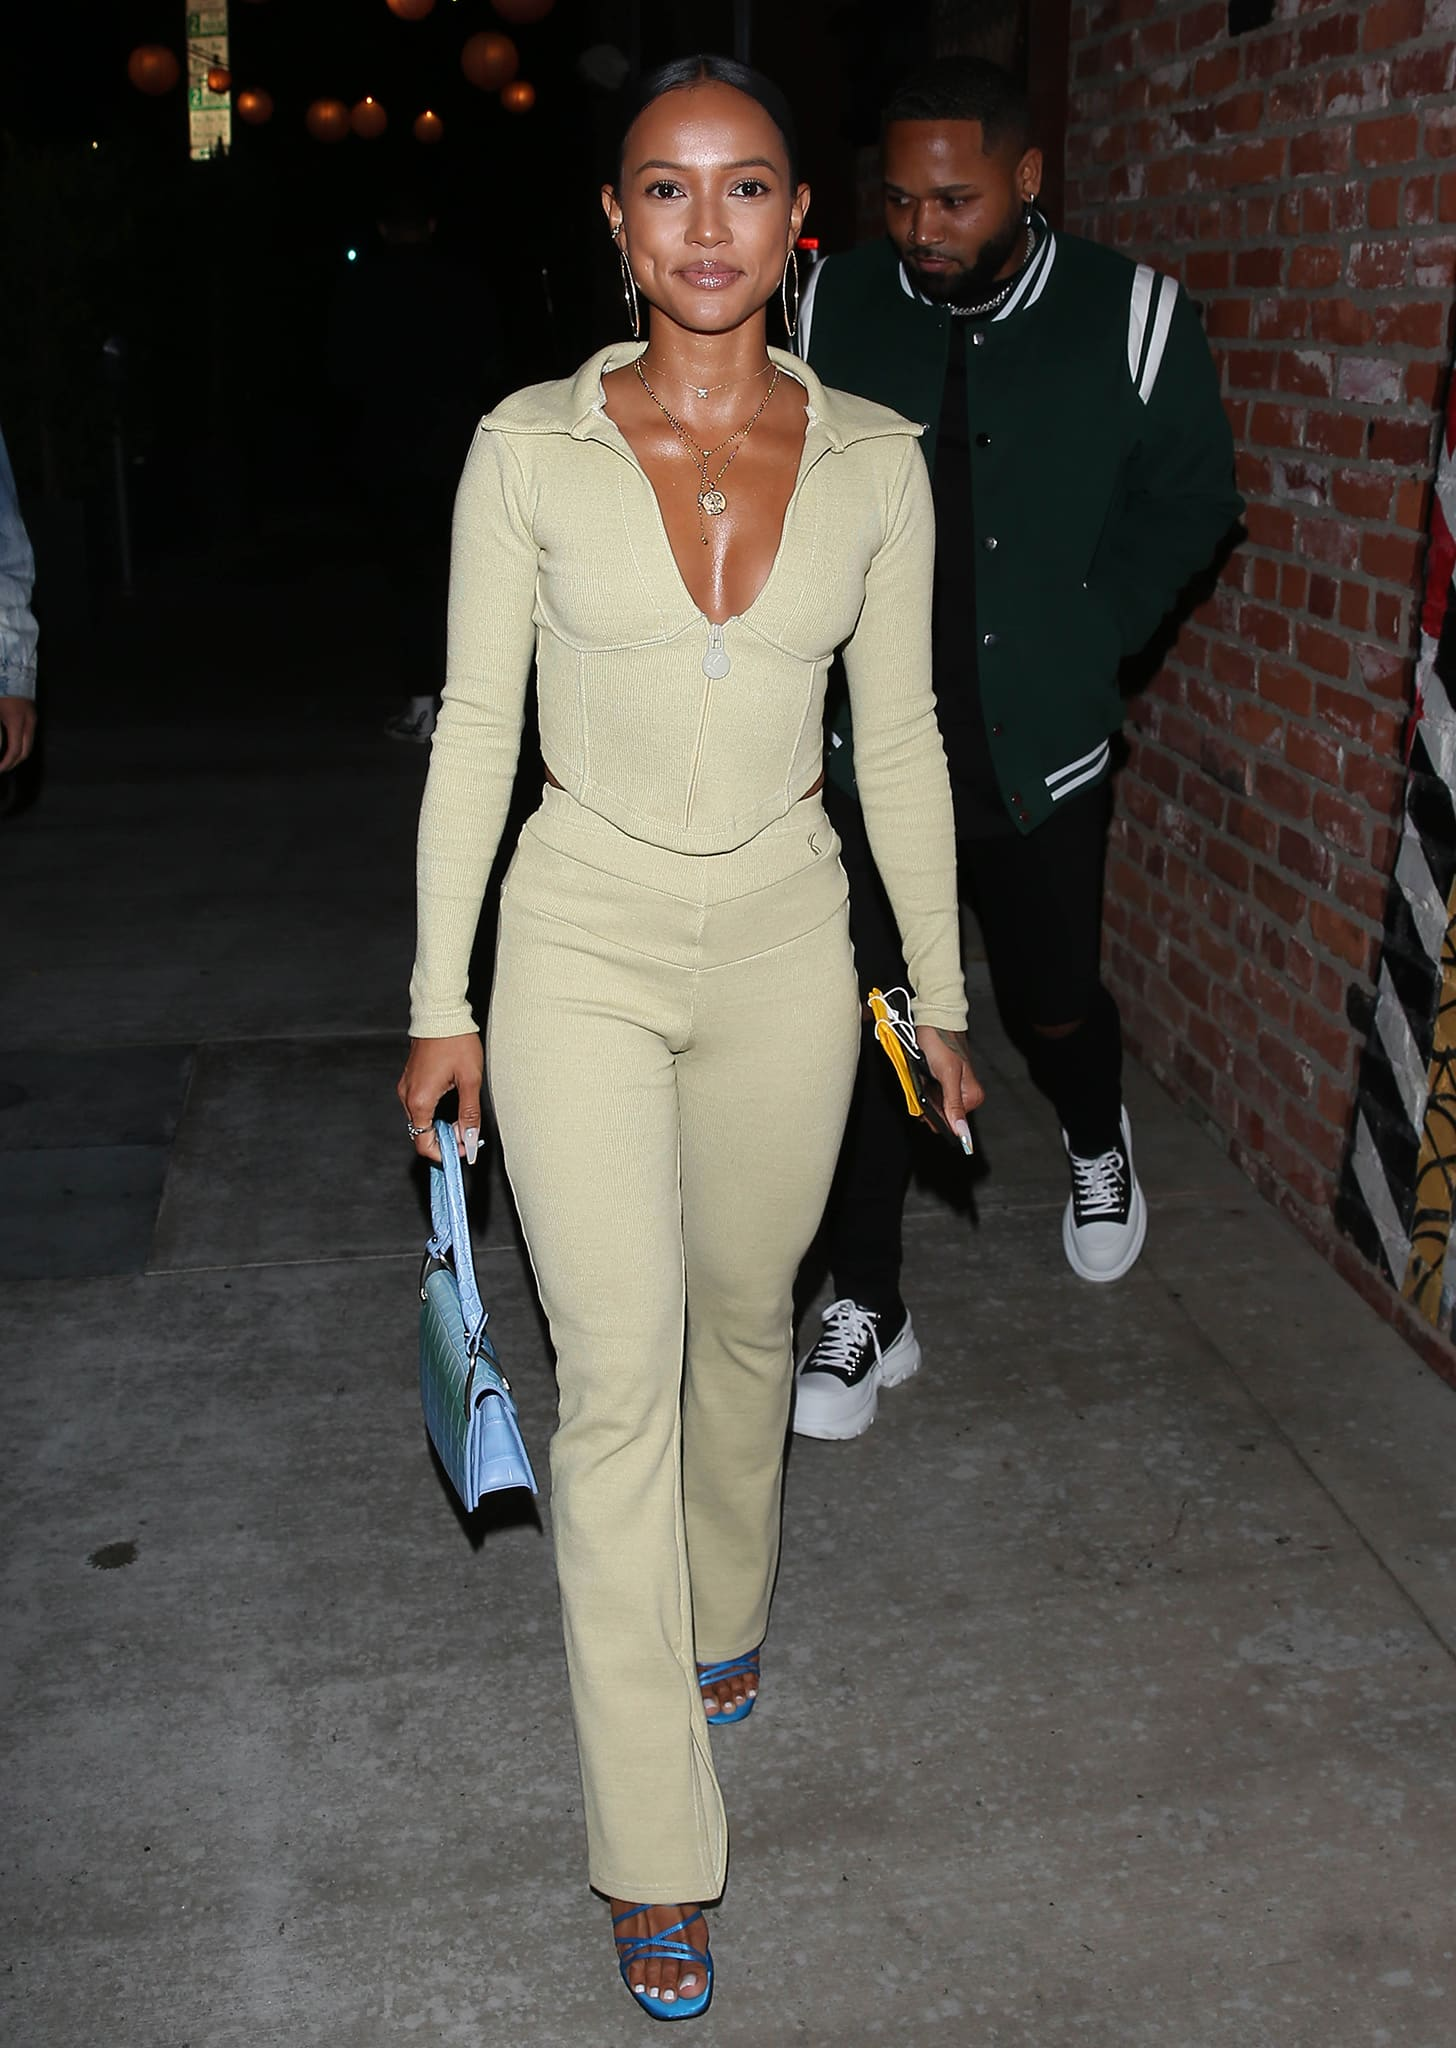 Karrueche Tran shows off her cleavage in a sporty ribbed collared top and matching pants